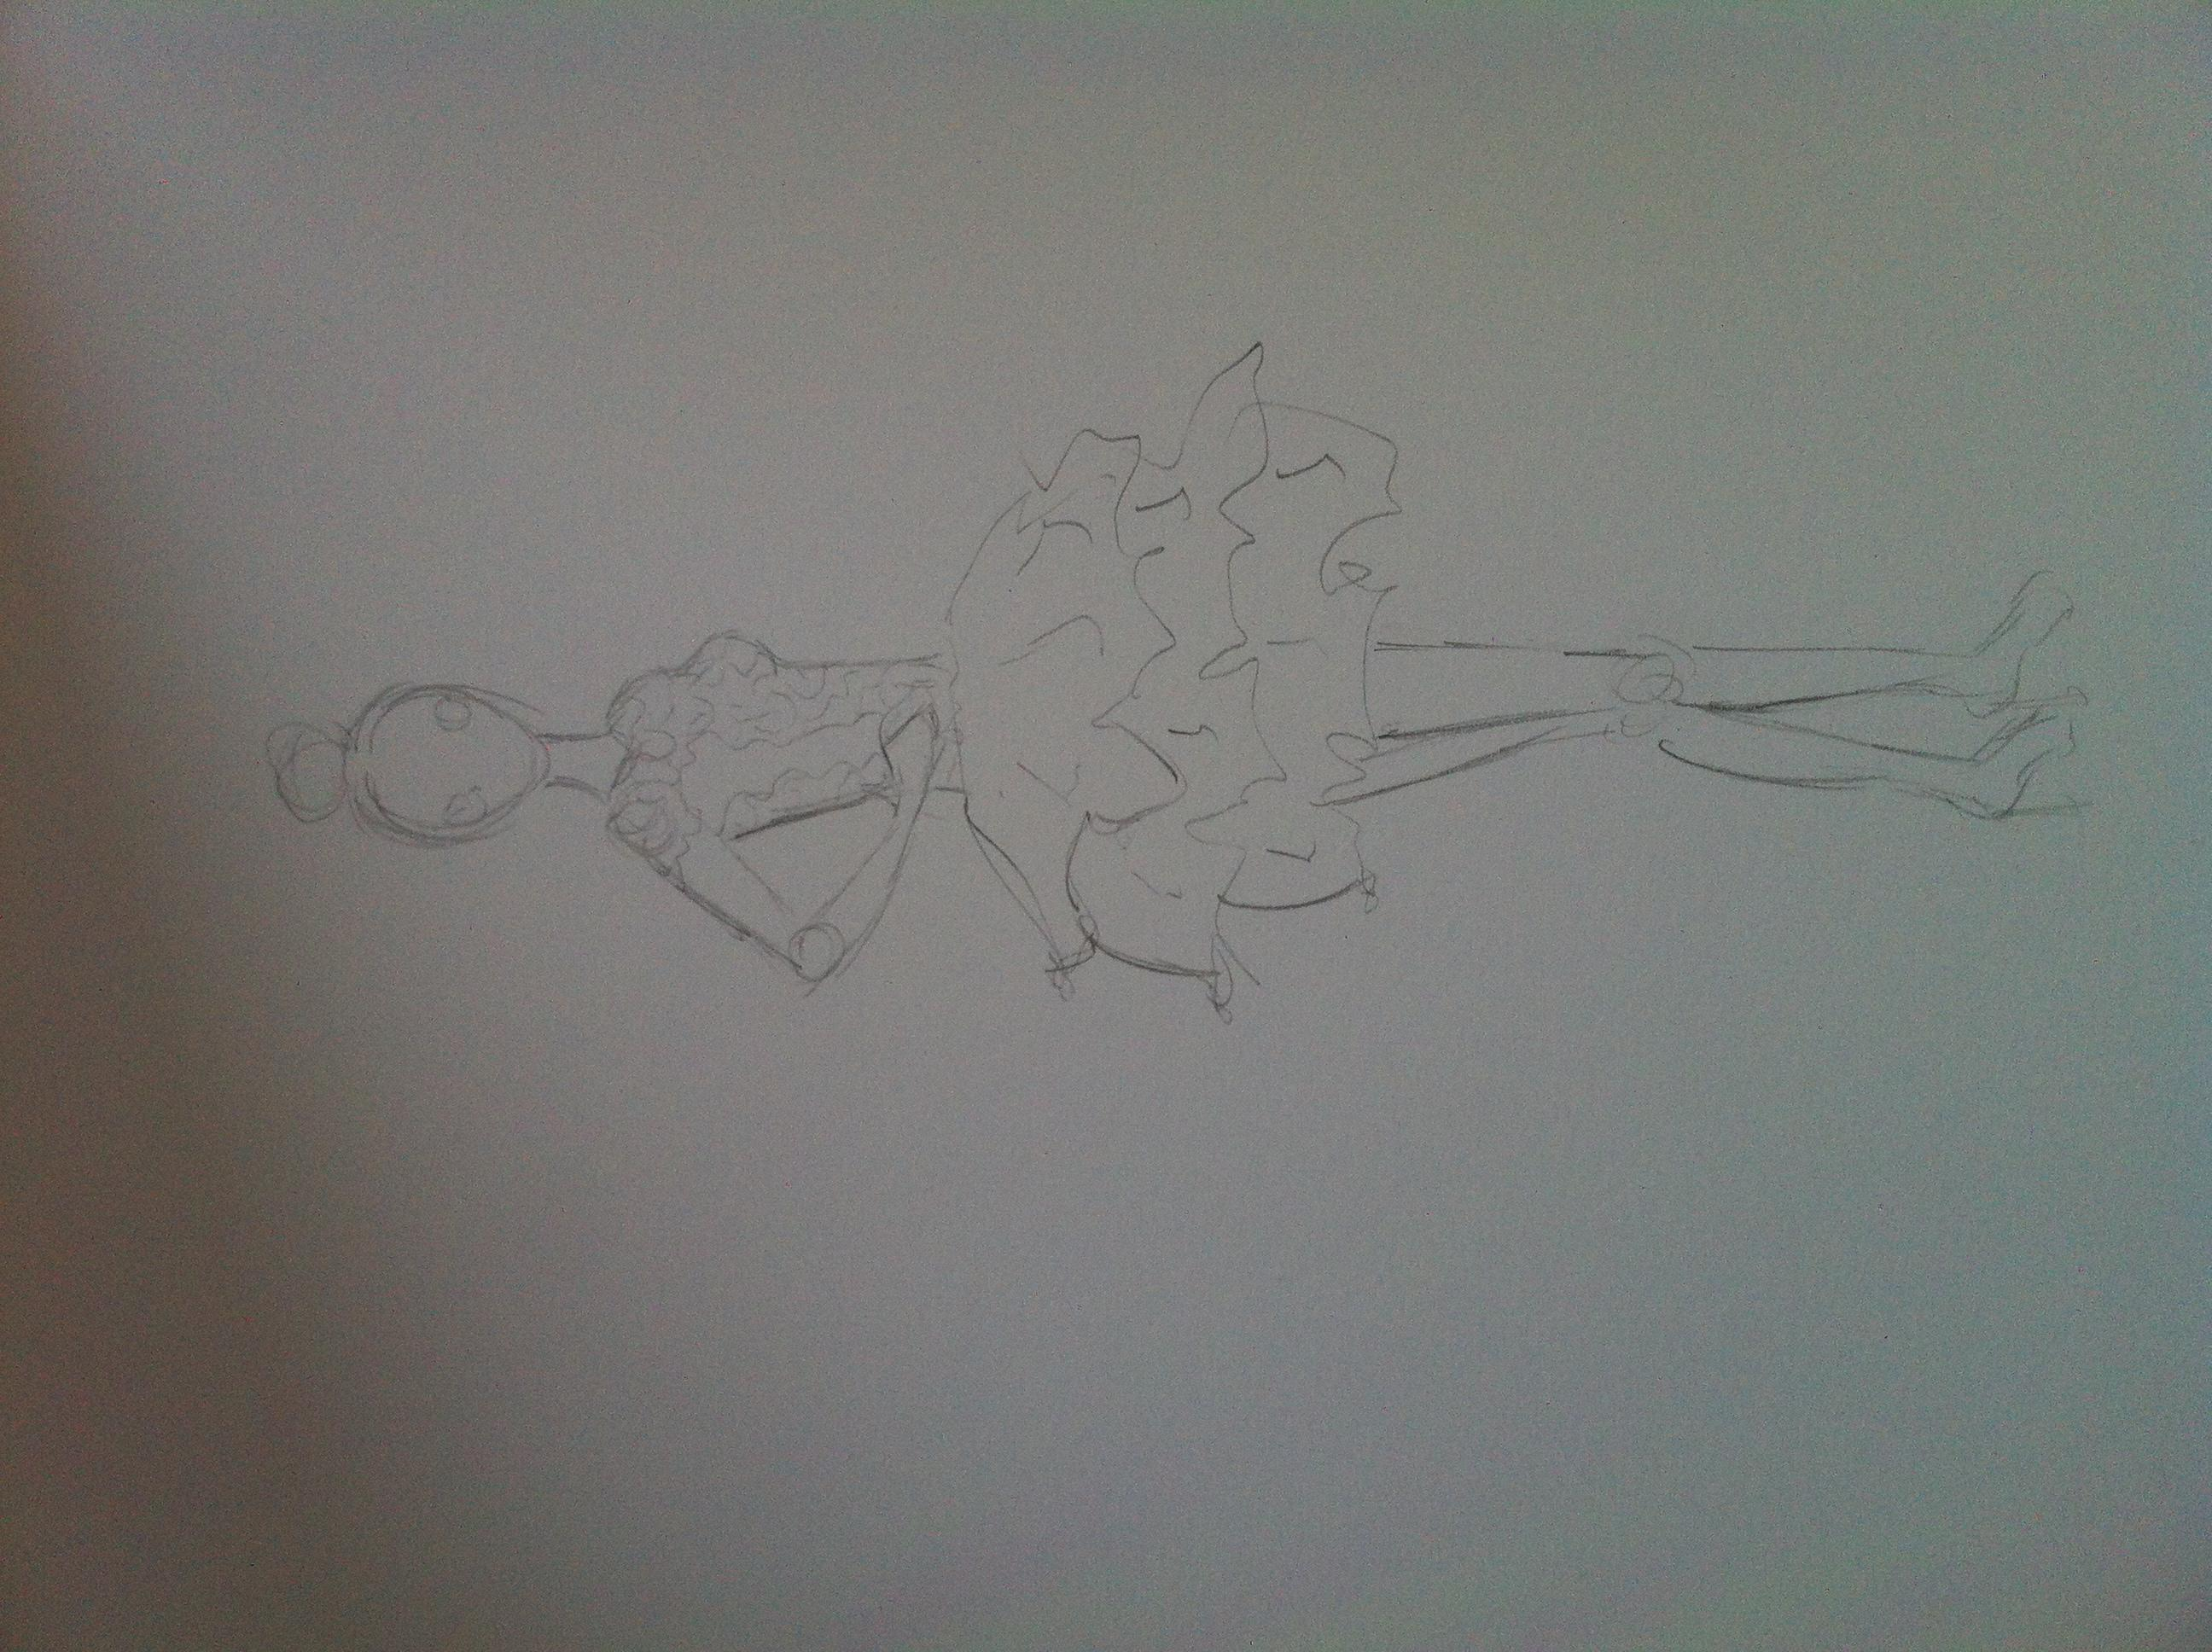 Sketches--Global Romanticism - image 19 - student project